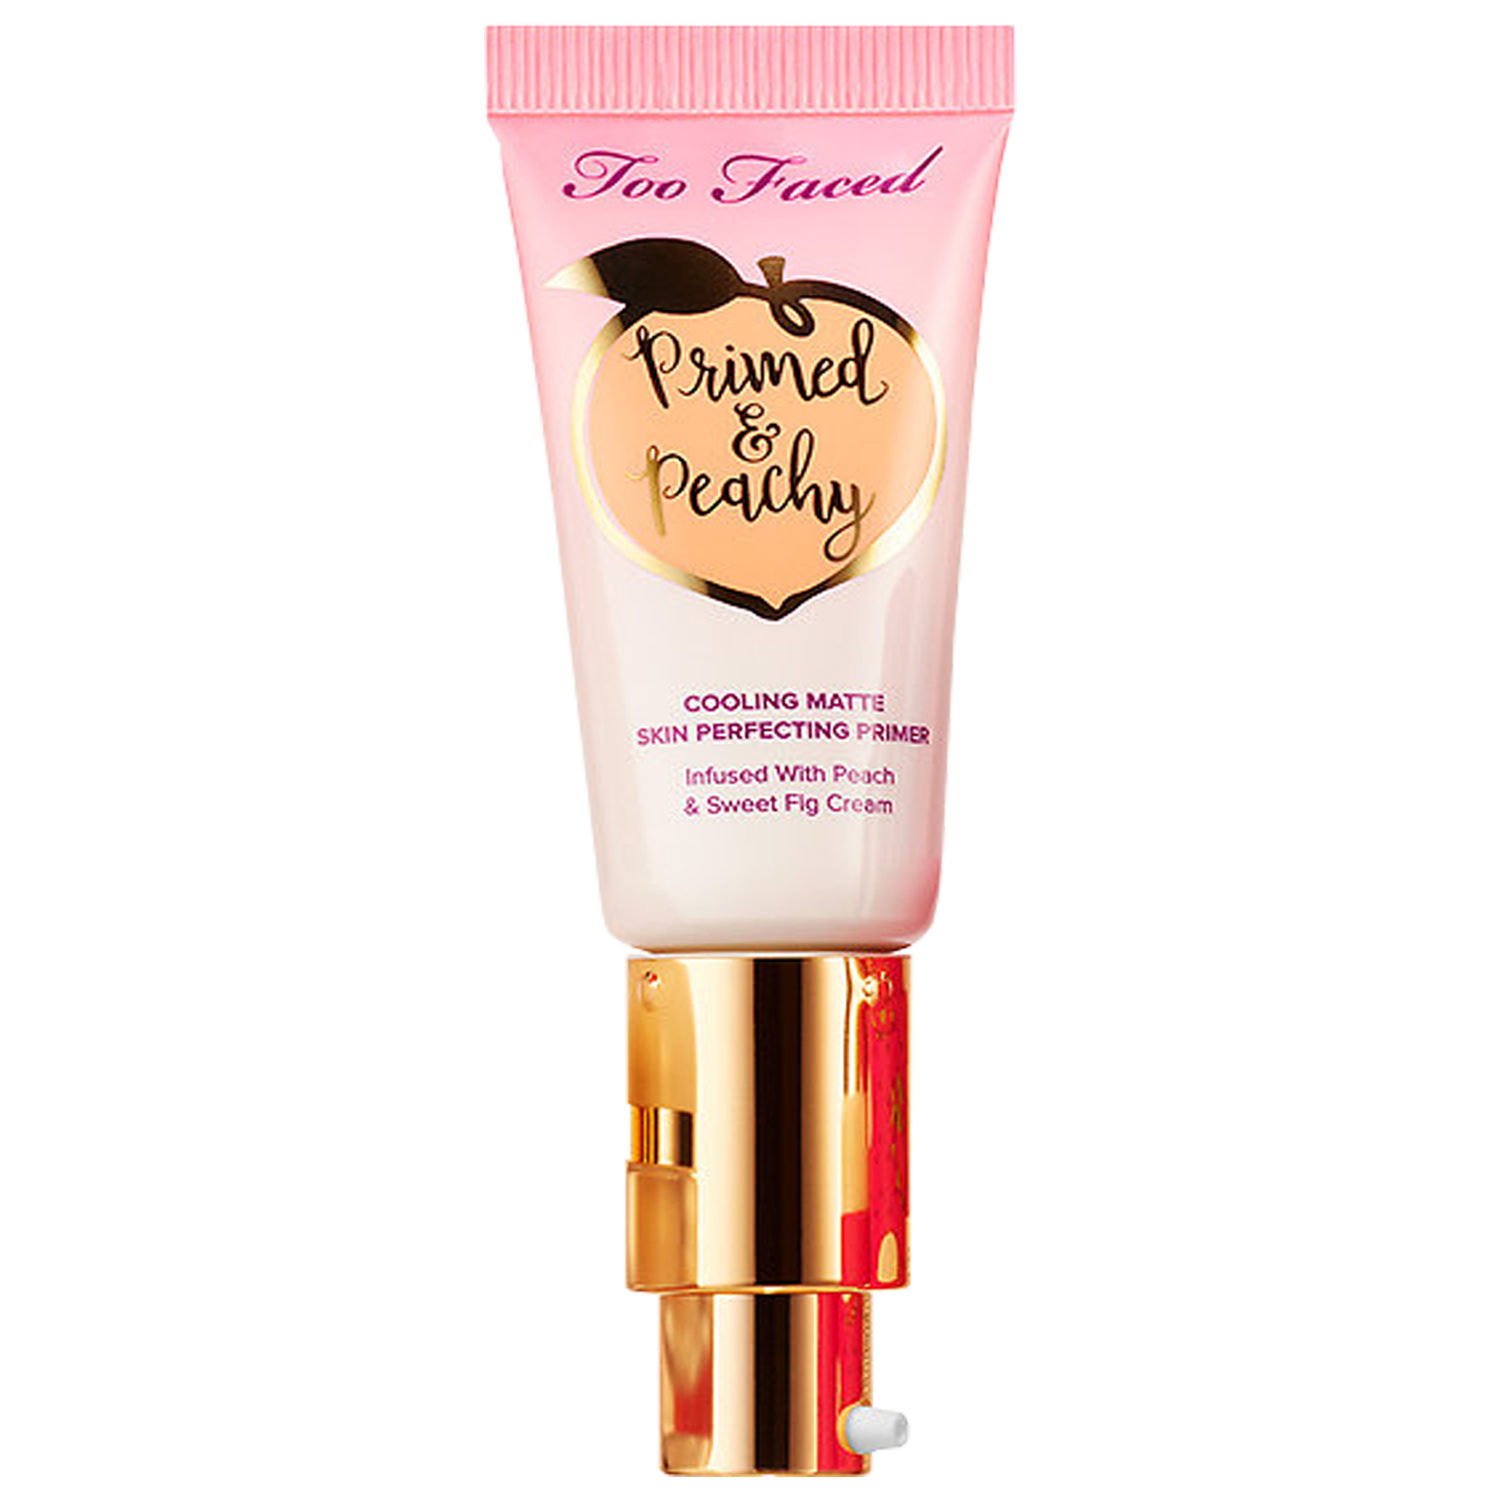 Kem lót TOO FACED PRIMED & PEACHY COOLING MATTE SKIN PERFECTING PRIMER Mini